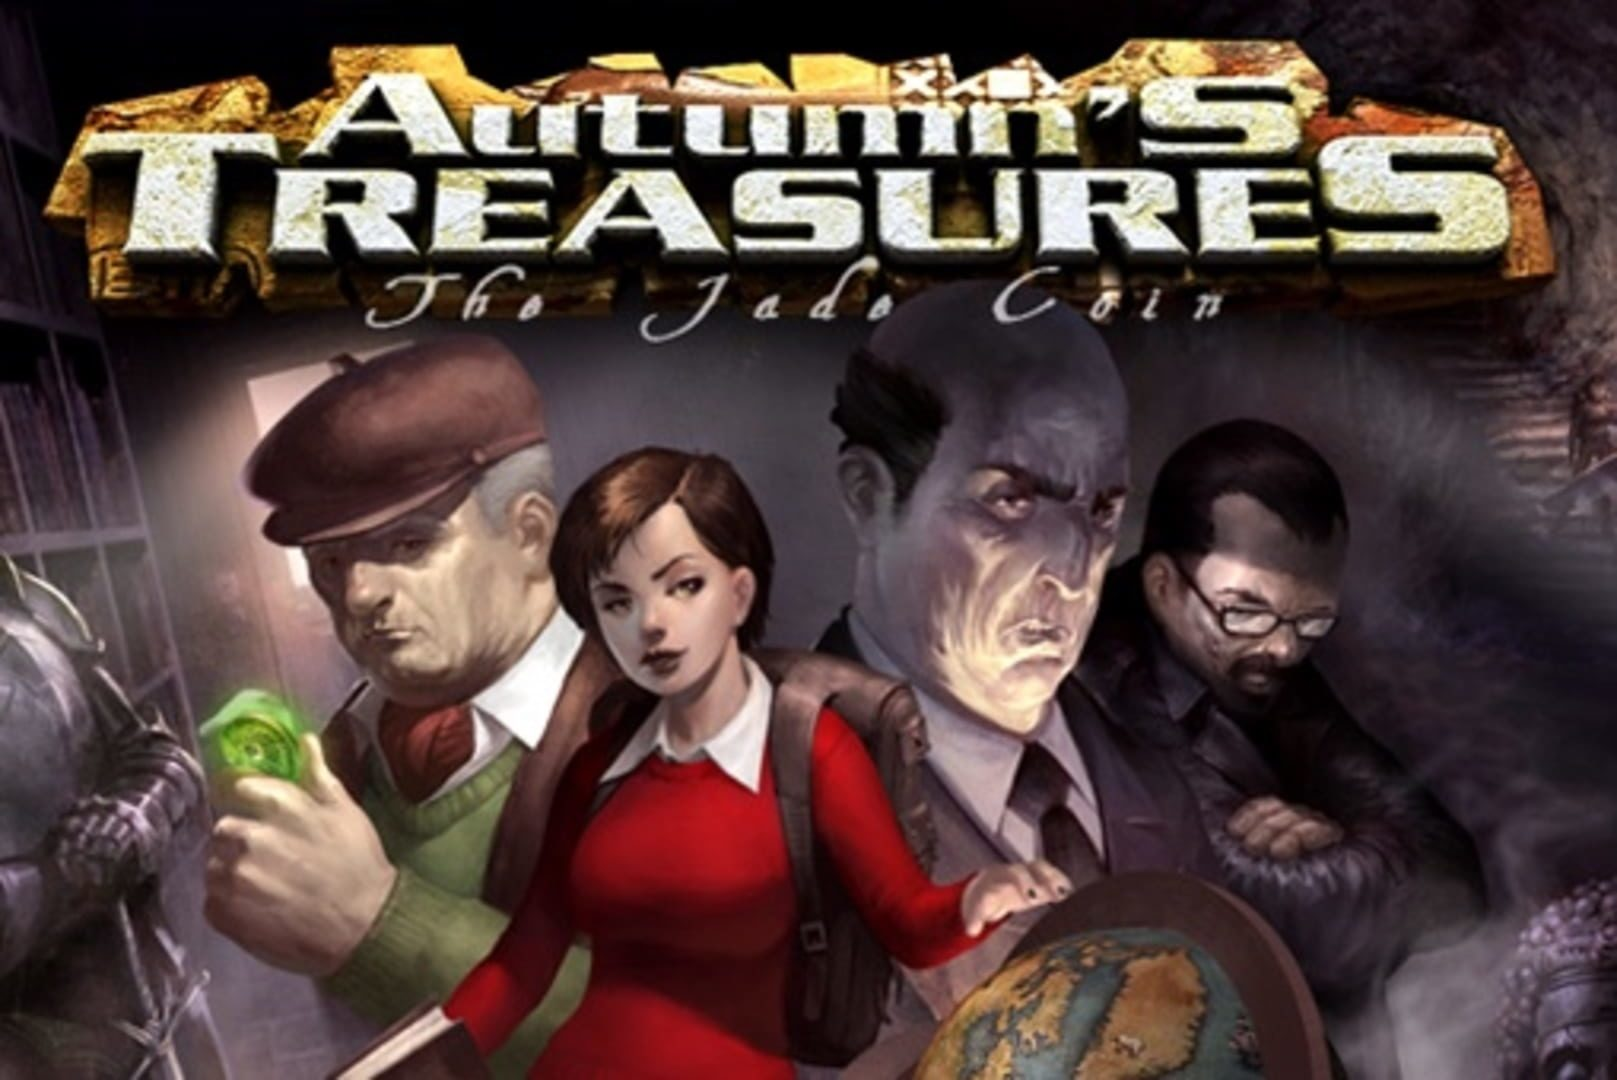 buy Autumn's Treasures: The Jade Coin cd key for all platform